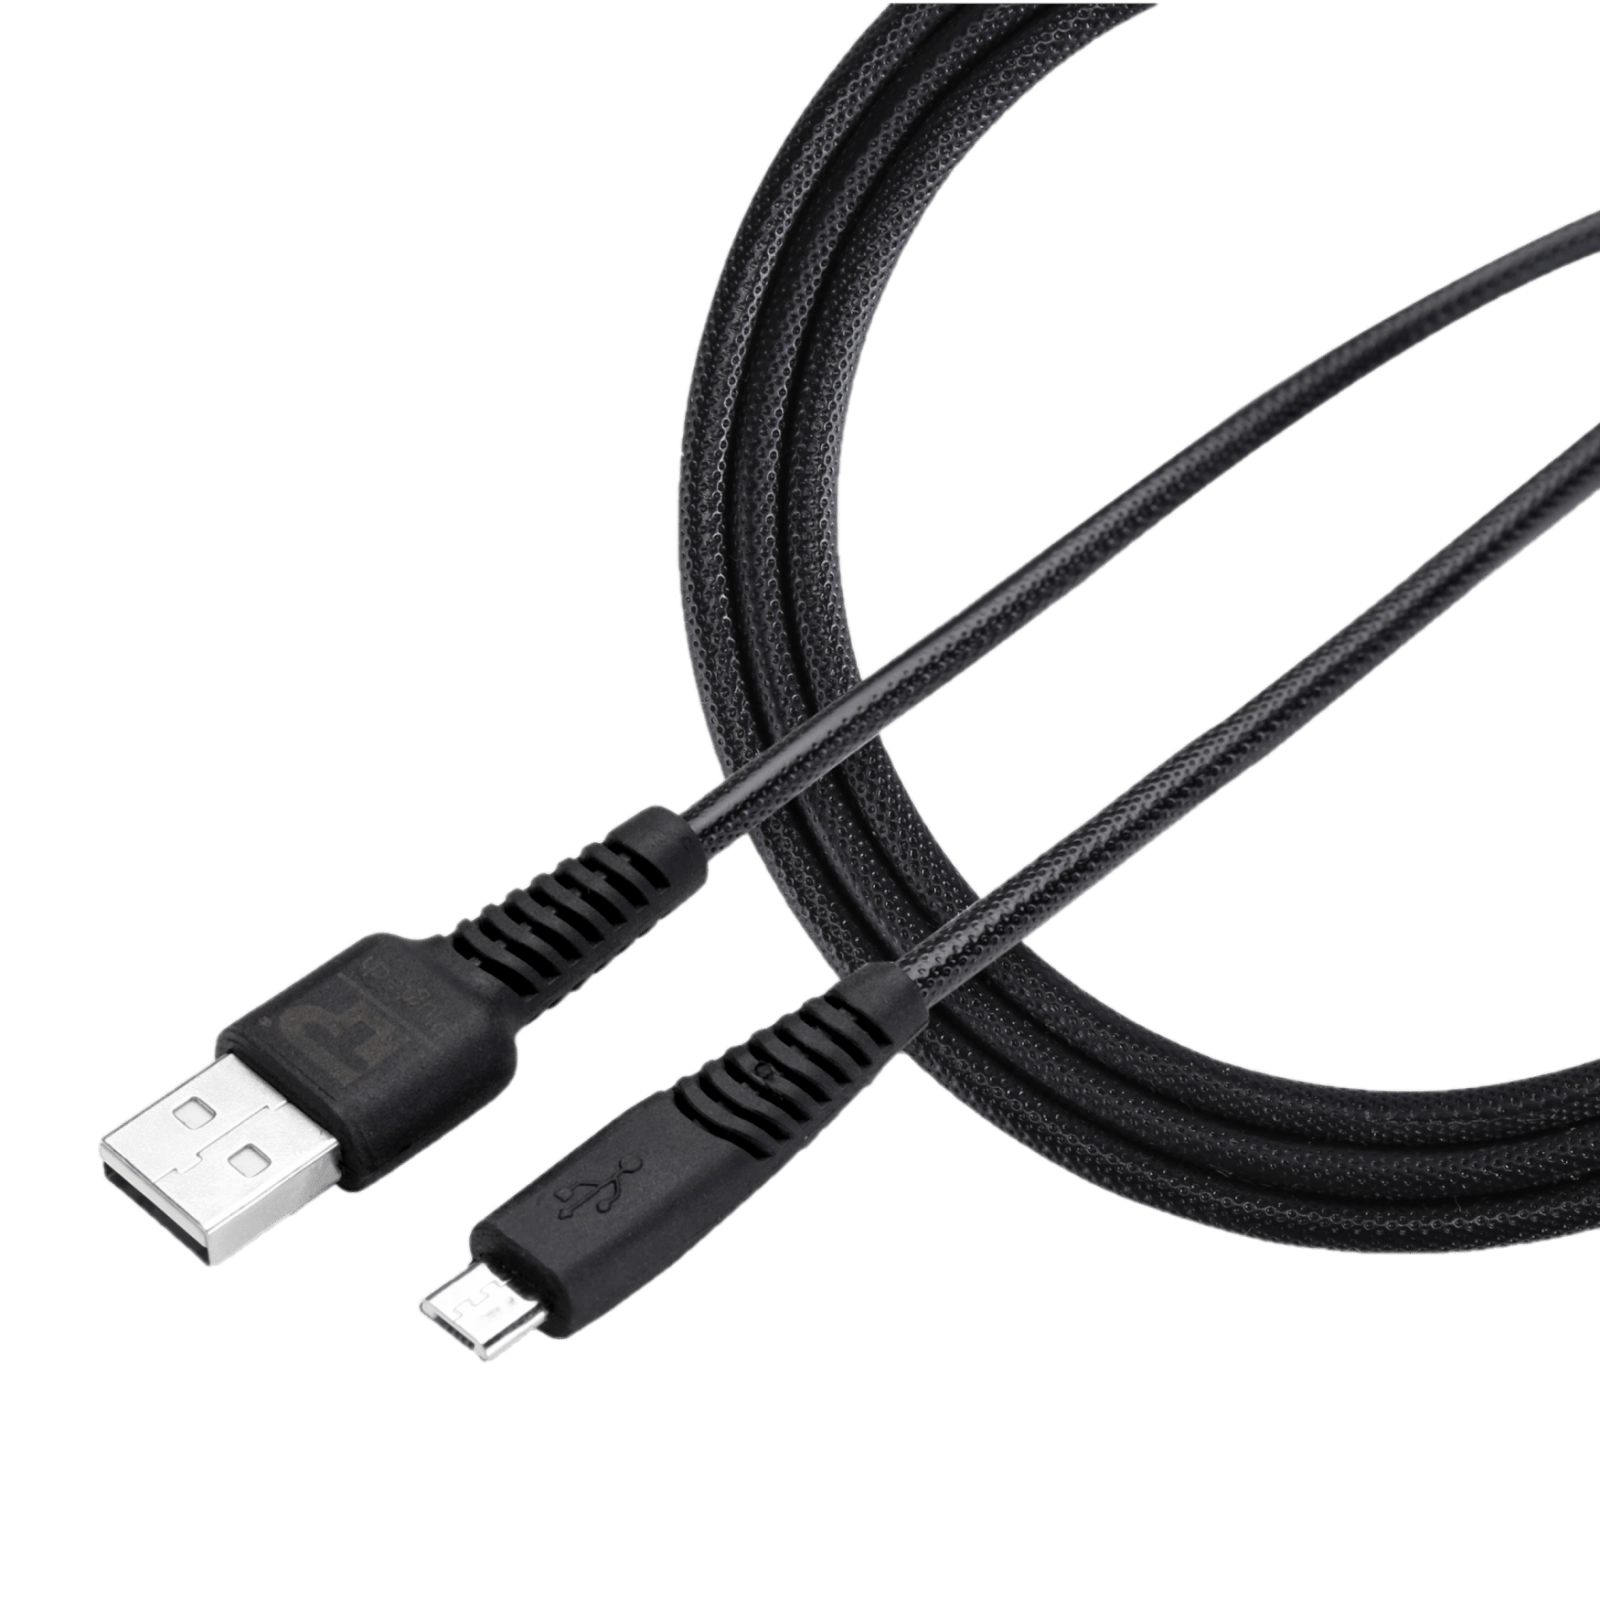 Plugtech M03 Micro USB Cable Data & Sync